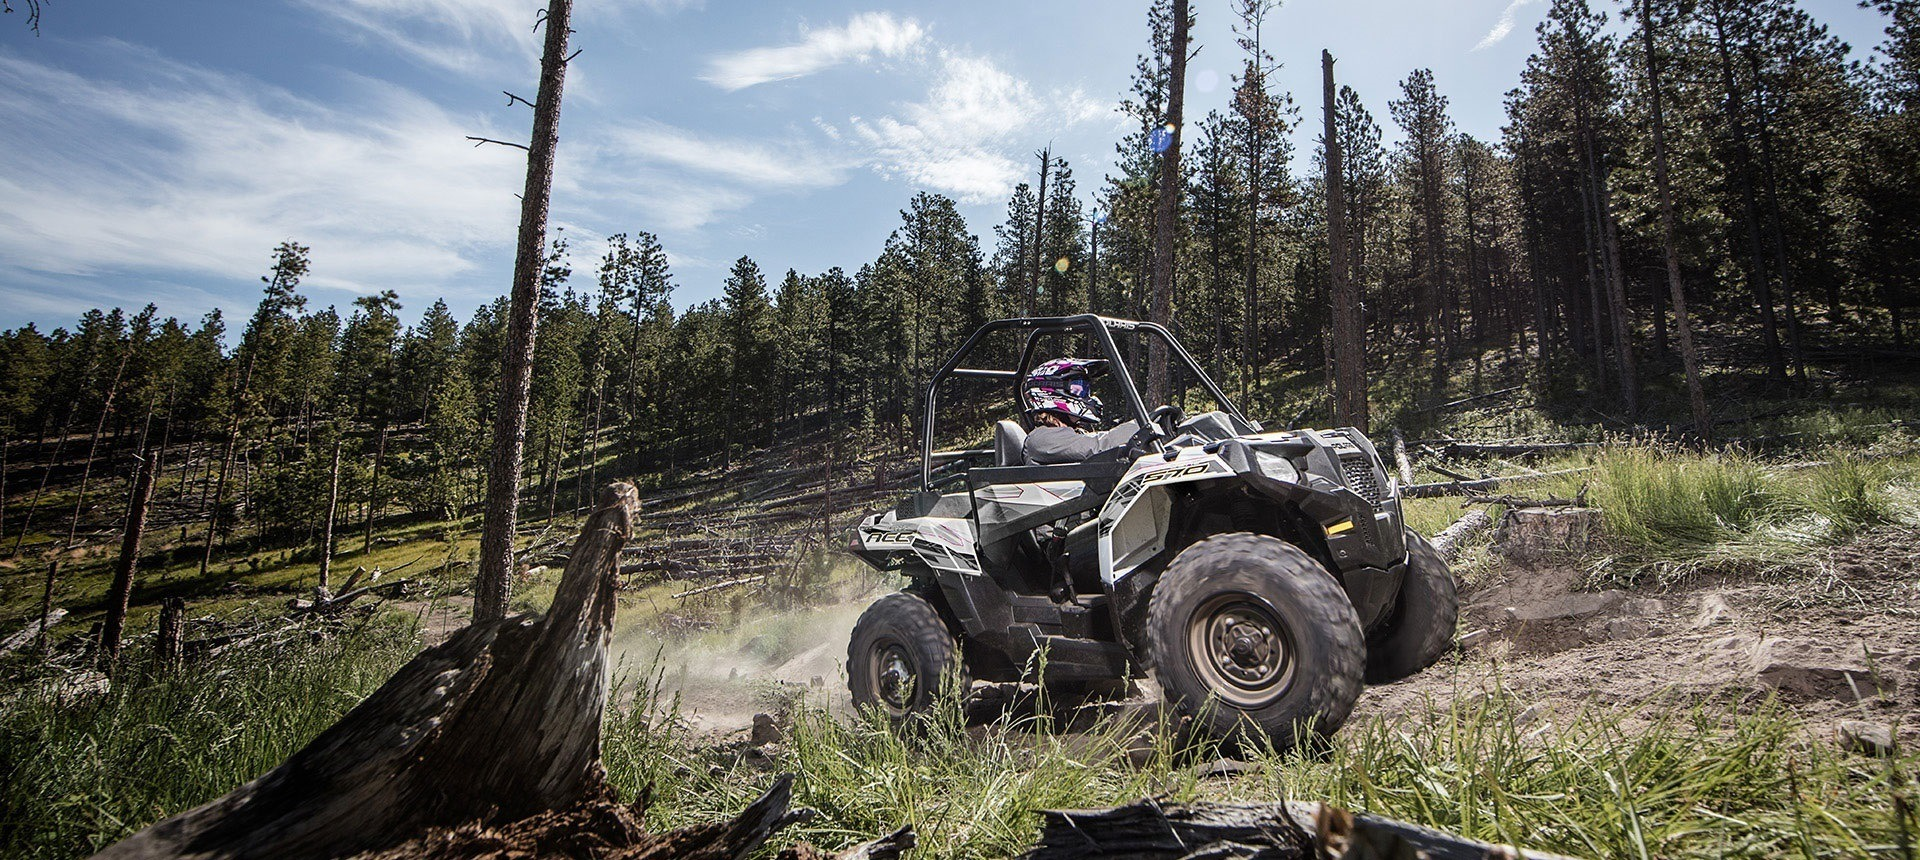 2019 Polaris Ace 570 EPS in Sumter, South Carolina